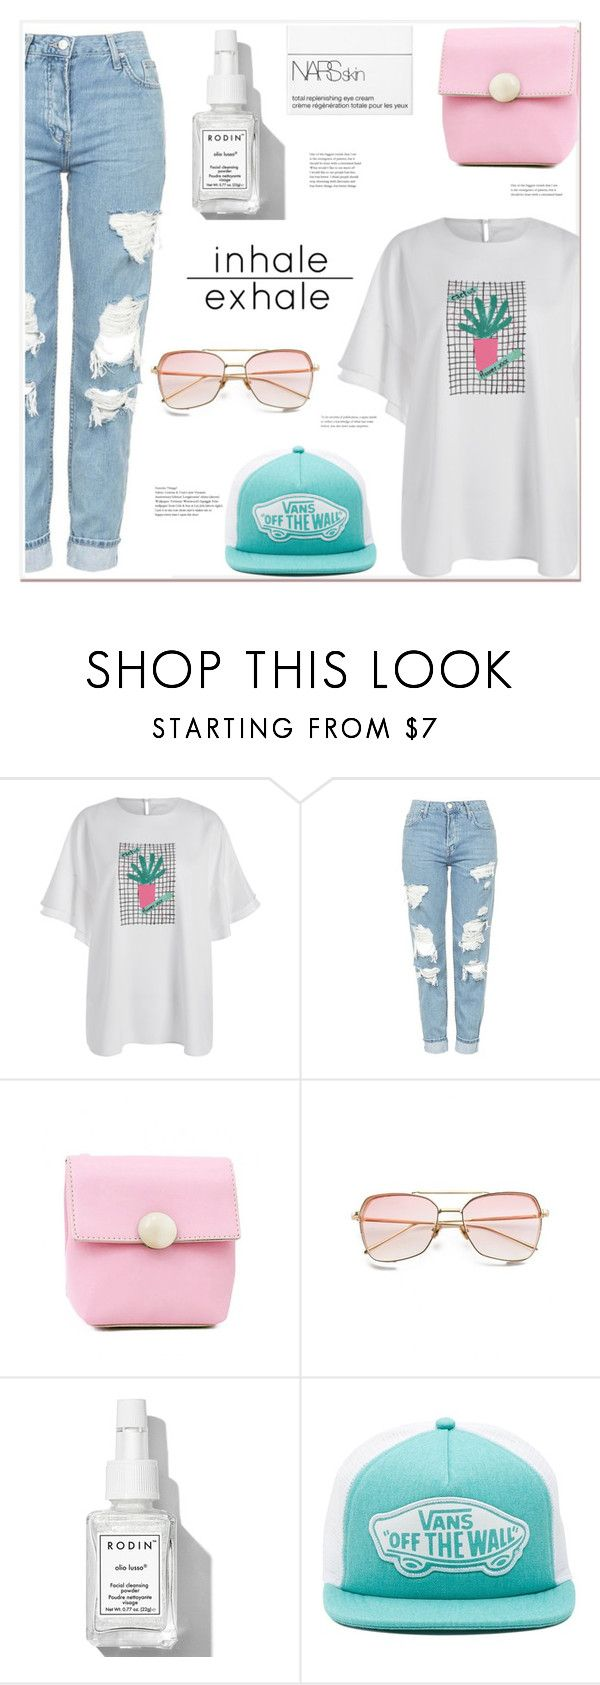 """""""inhale exhale"""" by mycherryblossom ❤ liked on Polyvore featuring Topshop, Rodin, Vans and NARS Cosmetics"""